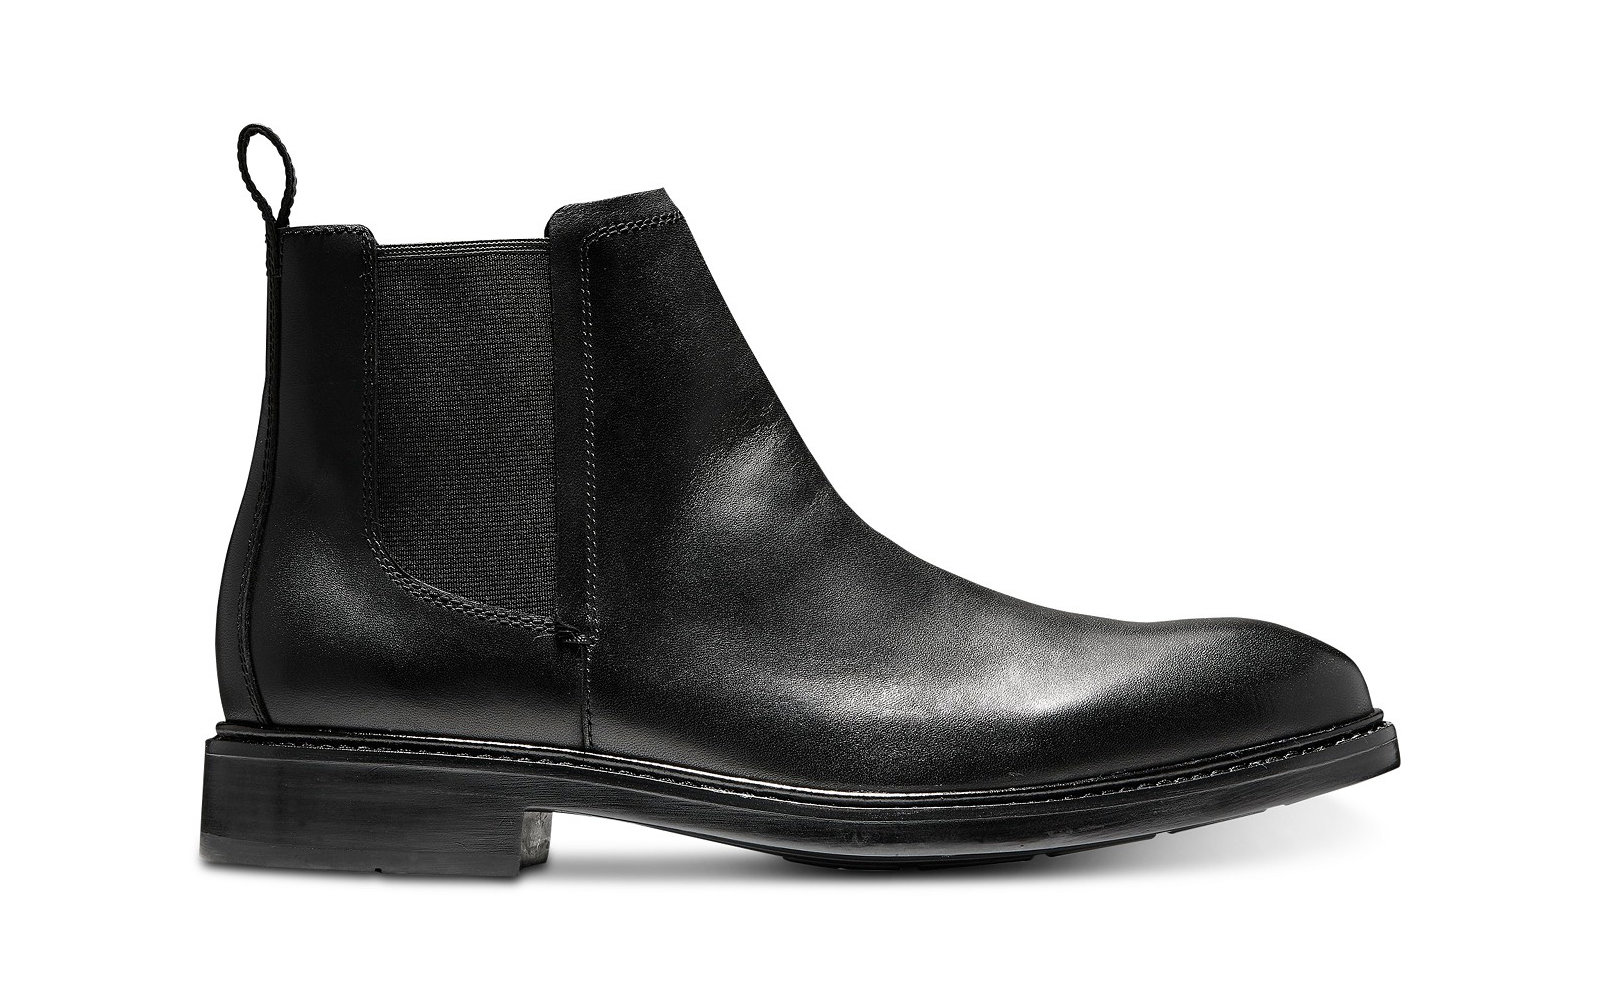 Best Chelsea Boots: Cole Haan Men's Kennedy Grand Waterproof Chelsea Boots